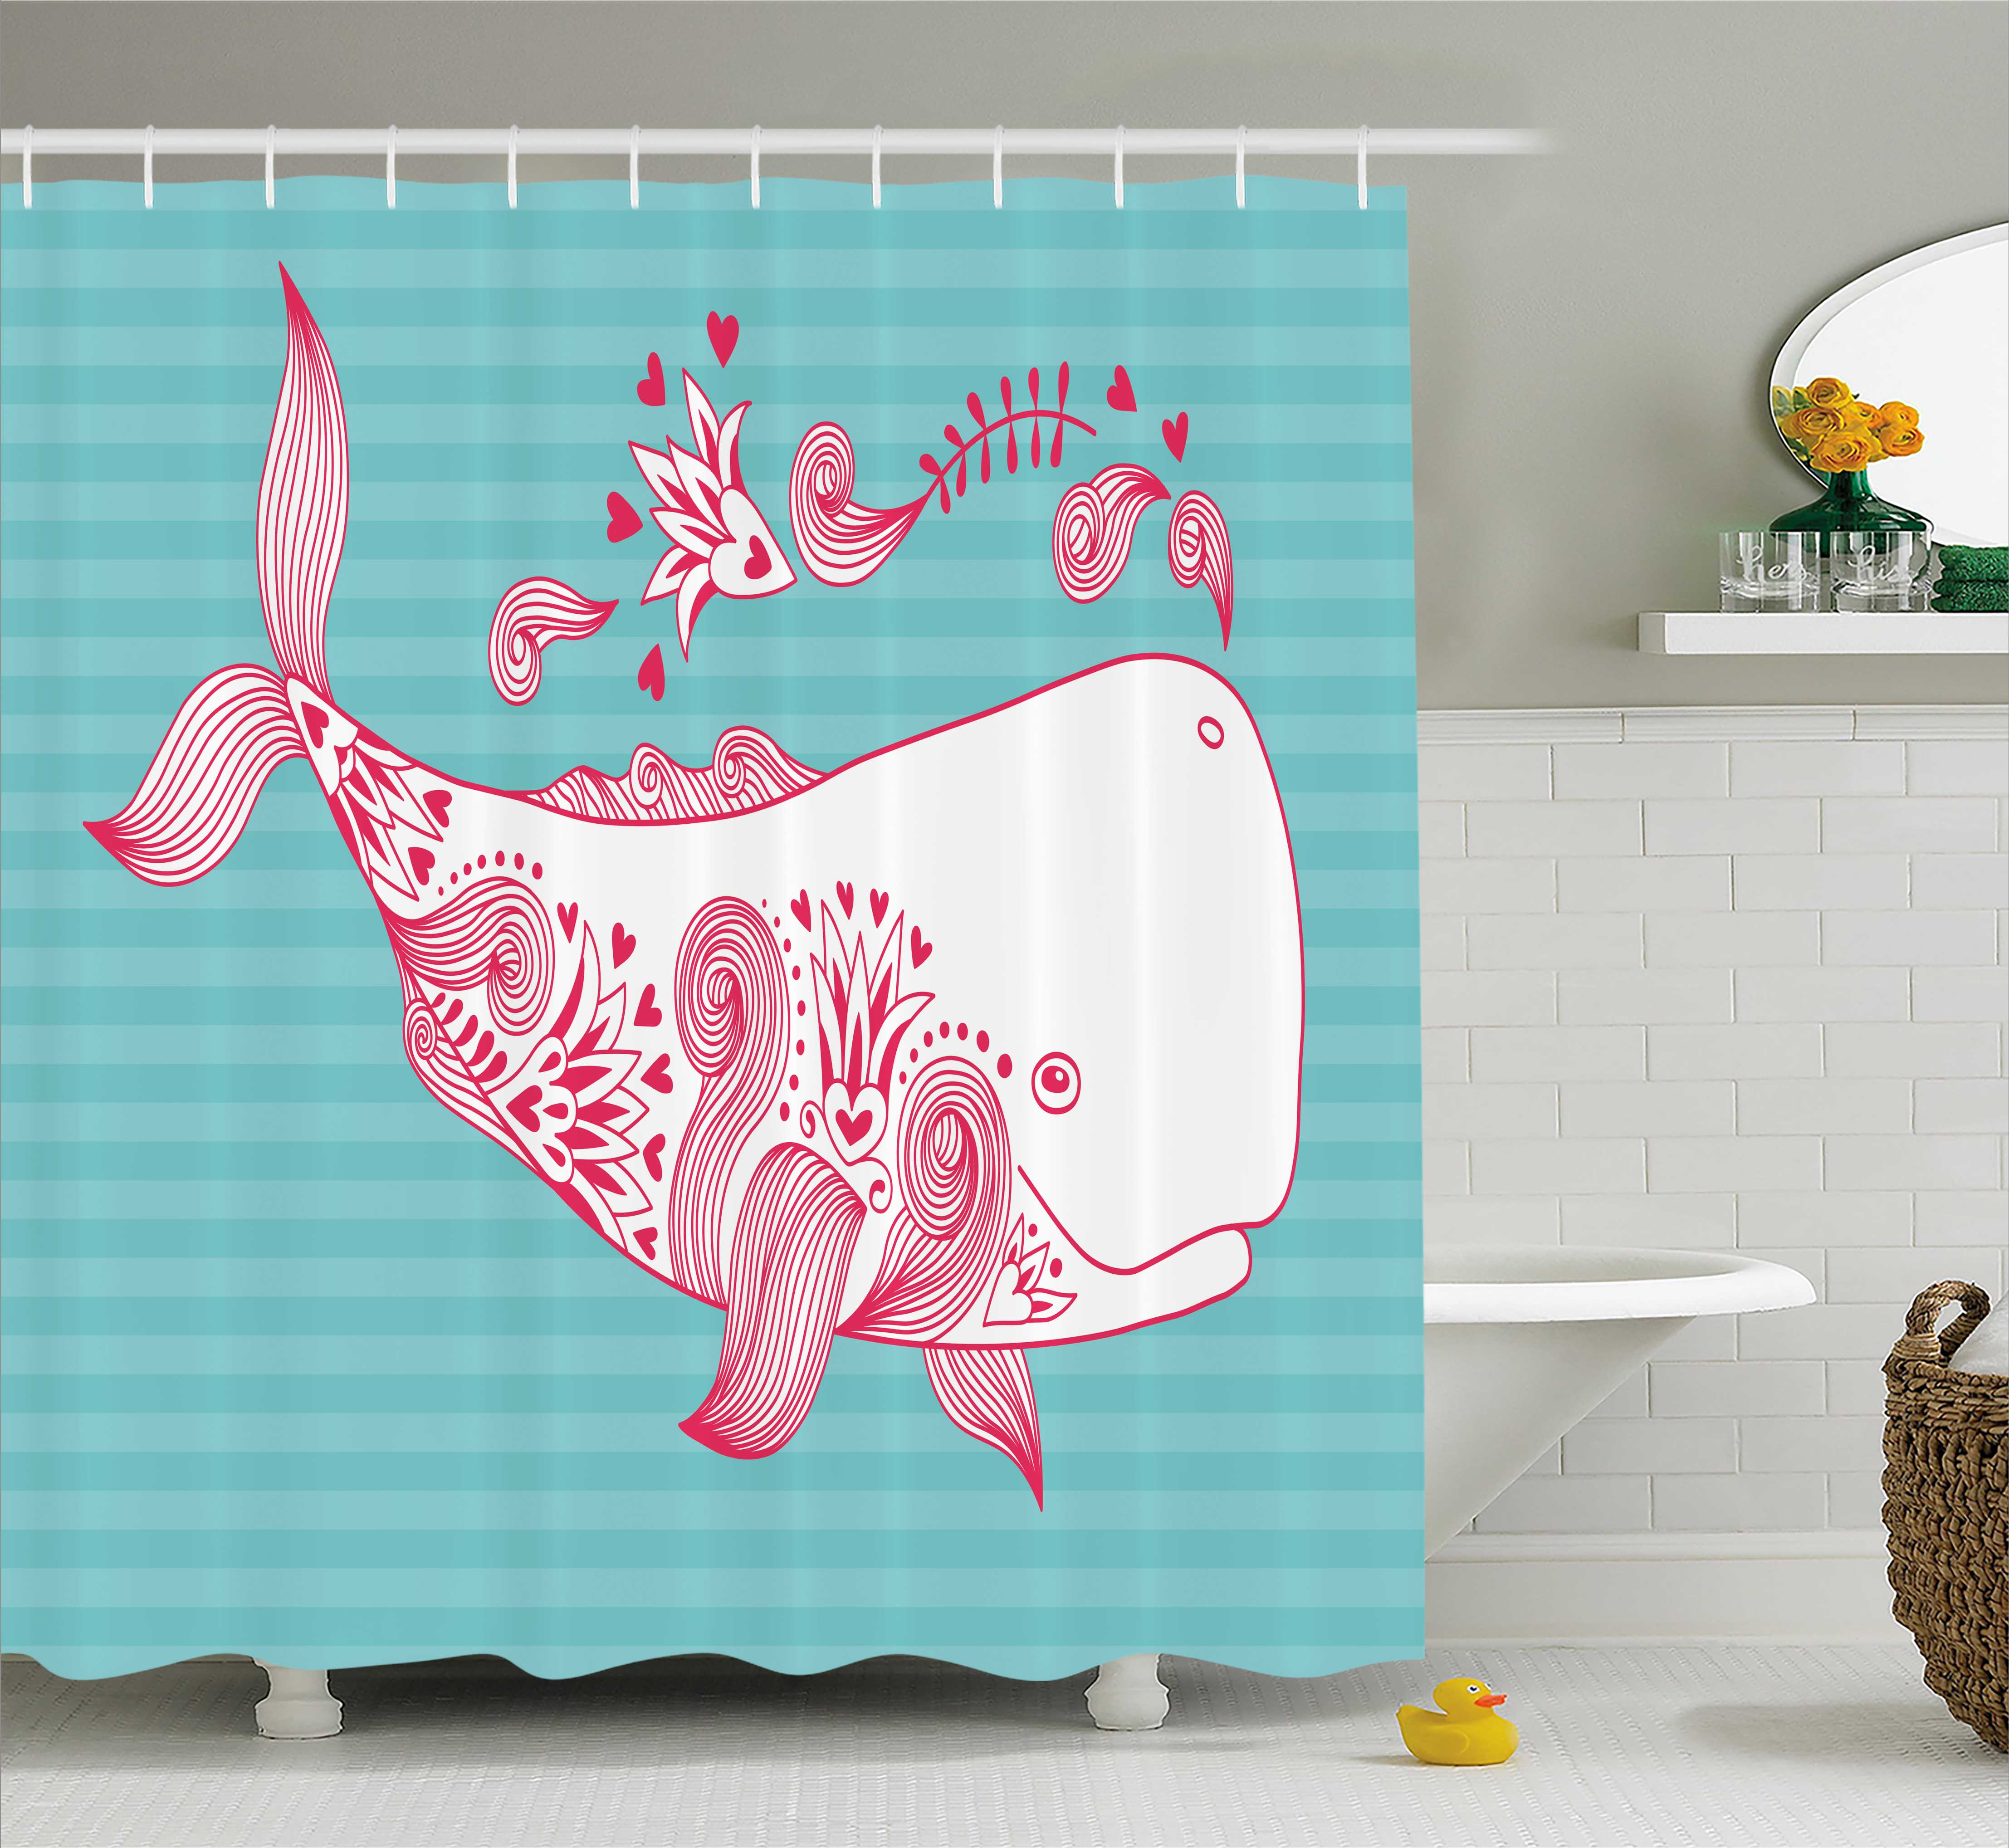 Whale Shower Curtain, Cute Big Fish Swimming and Floral Marine Animal Mammal Creature Themed Design, Fabric Bathroom Set with Hooks, 69W X 70L Inches, Teal Pink White, by Ambesonne